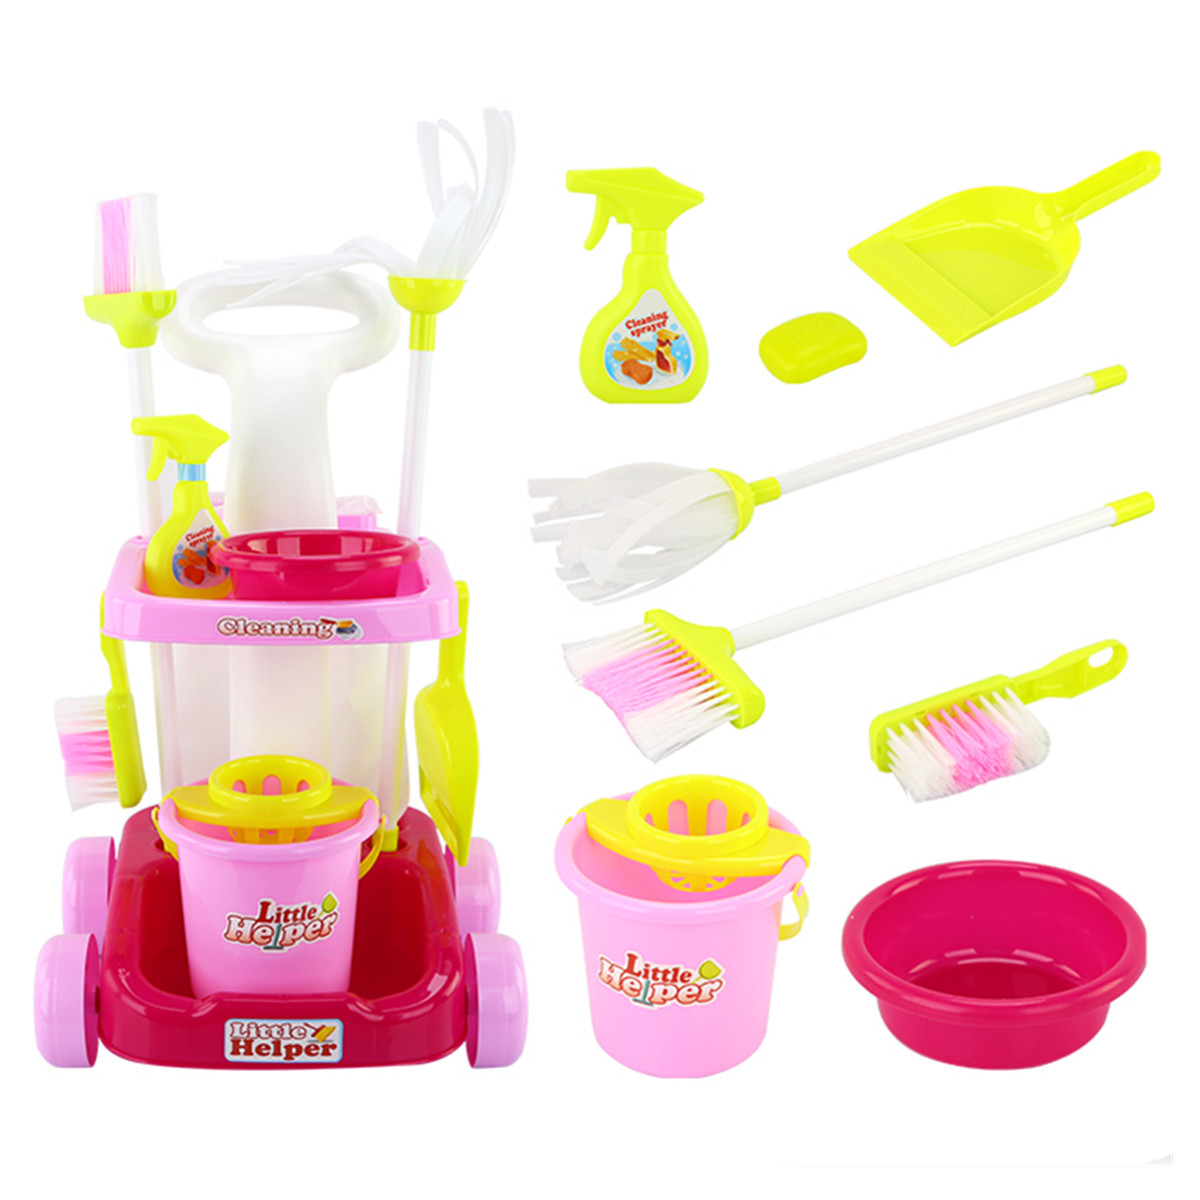 Kids Toddler Cleaner Cleaning Trolley Set Broom Duster Plastic Role Play Educational Toy Suitable for children above 3 years